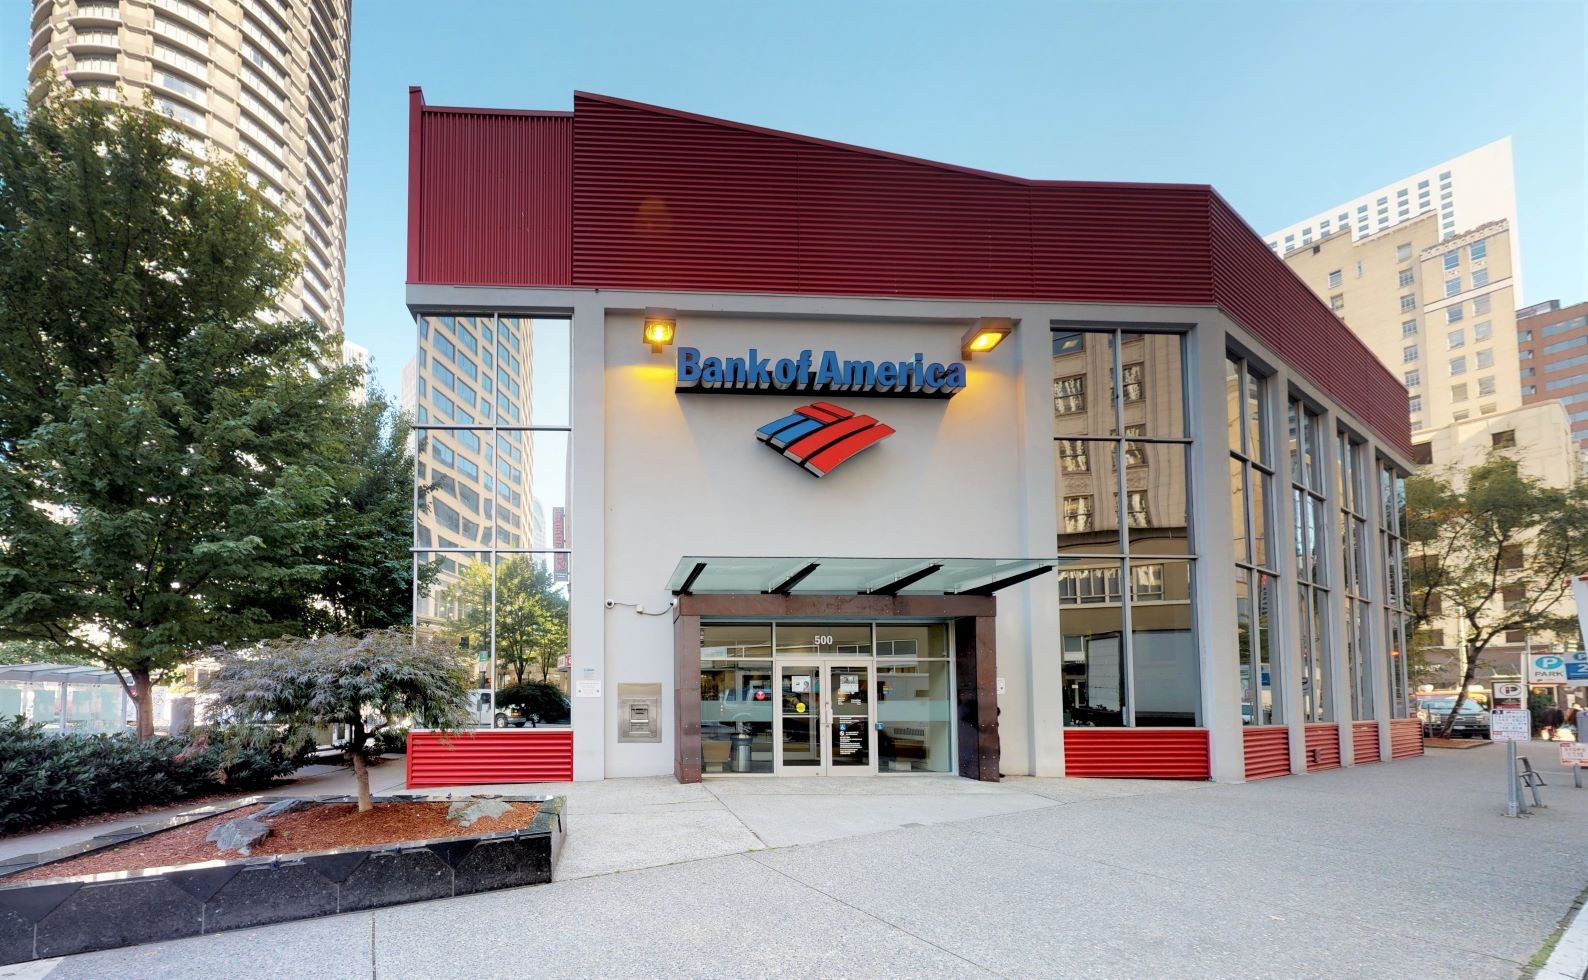 Bank of America financial center with walk-up ATM   500 Olive Way, Seattle, WA 98101